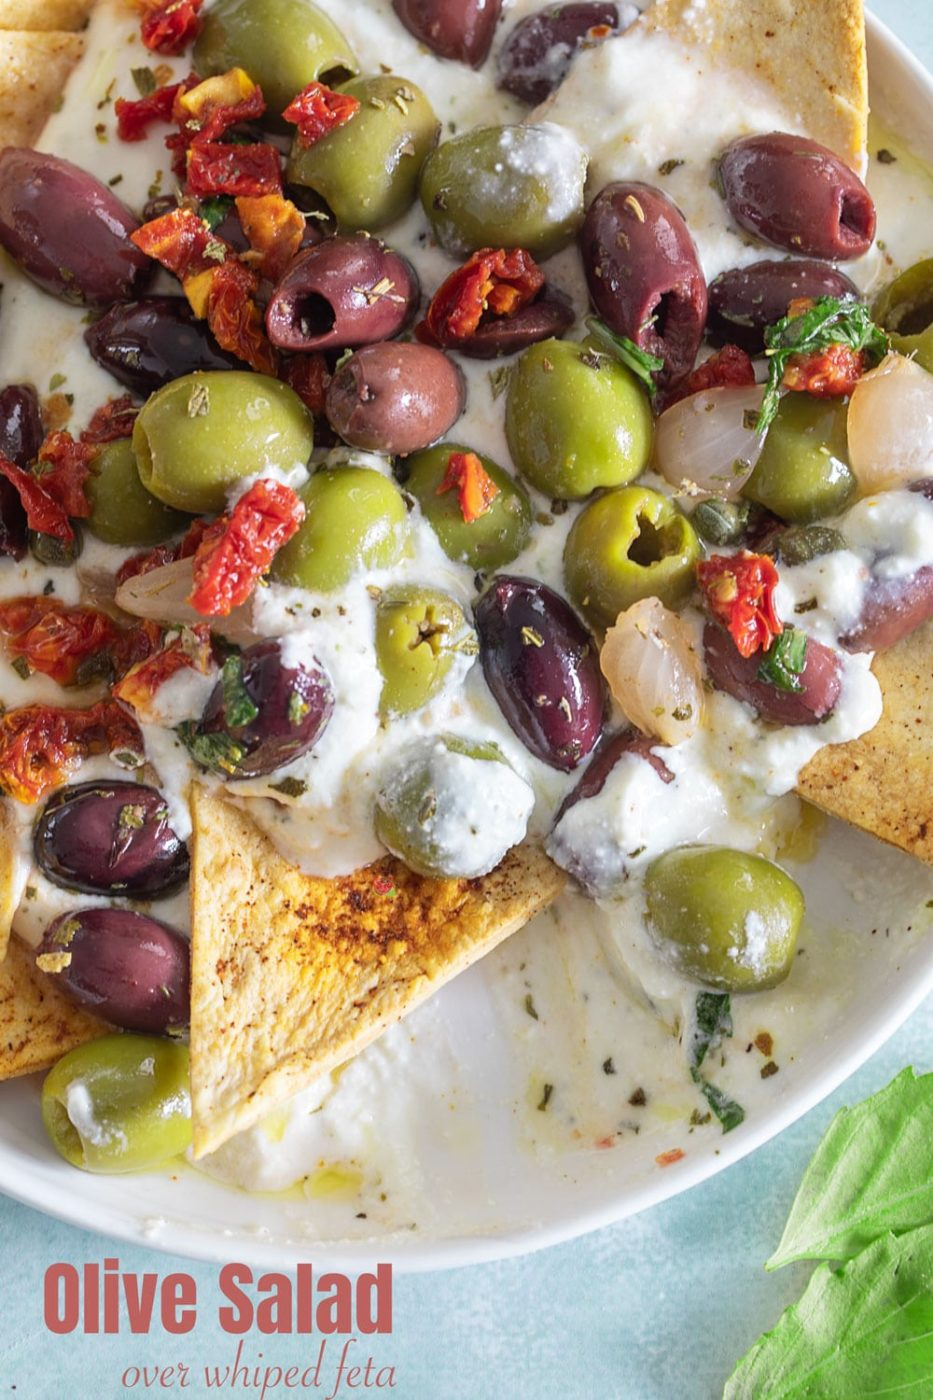 Top view of olive salad on a whipped feta dip. A chip is in the process of scooping up the dip